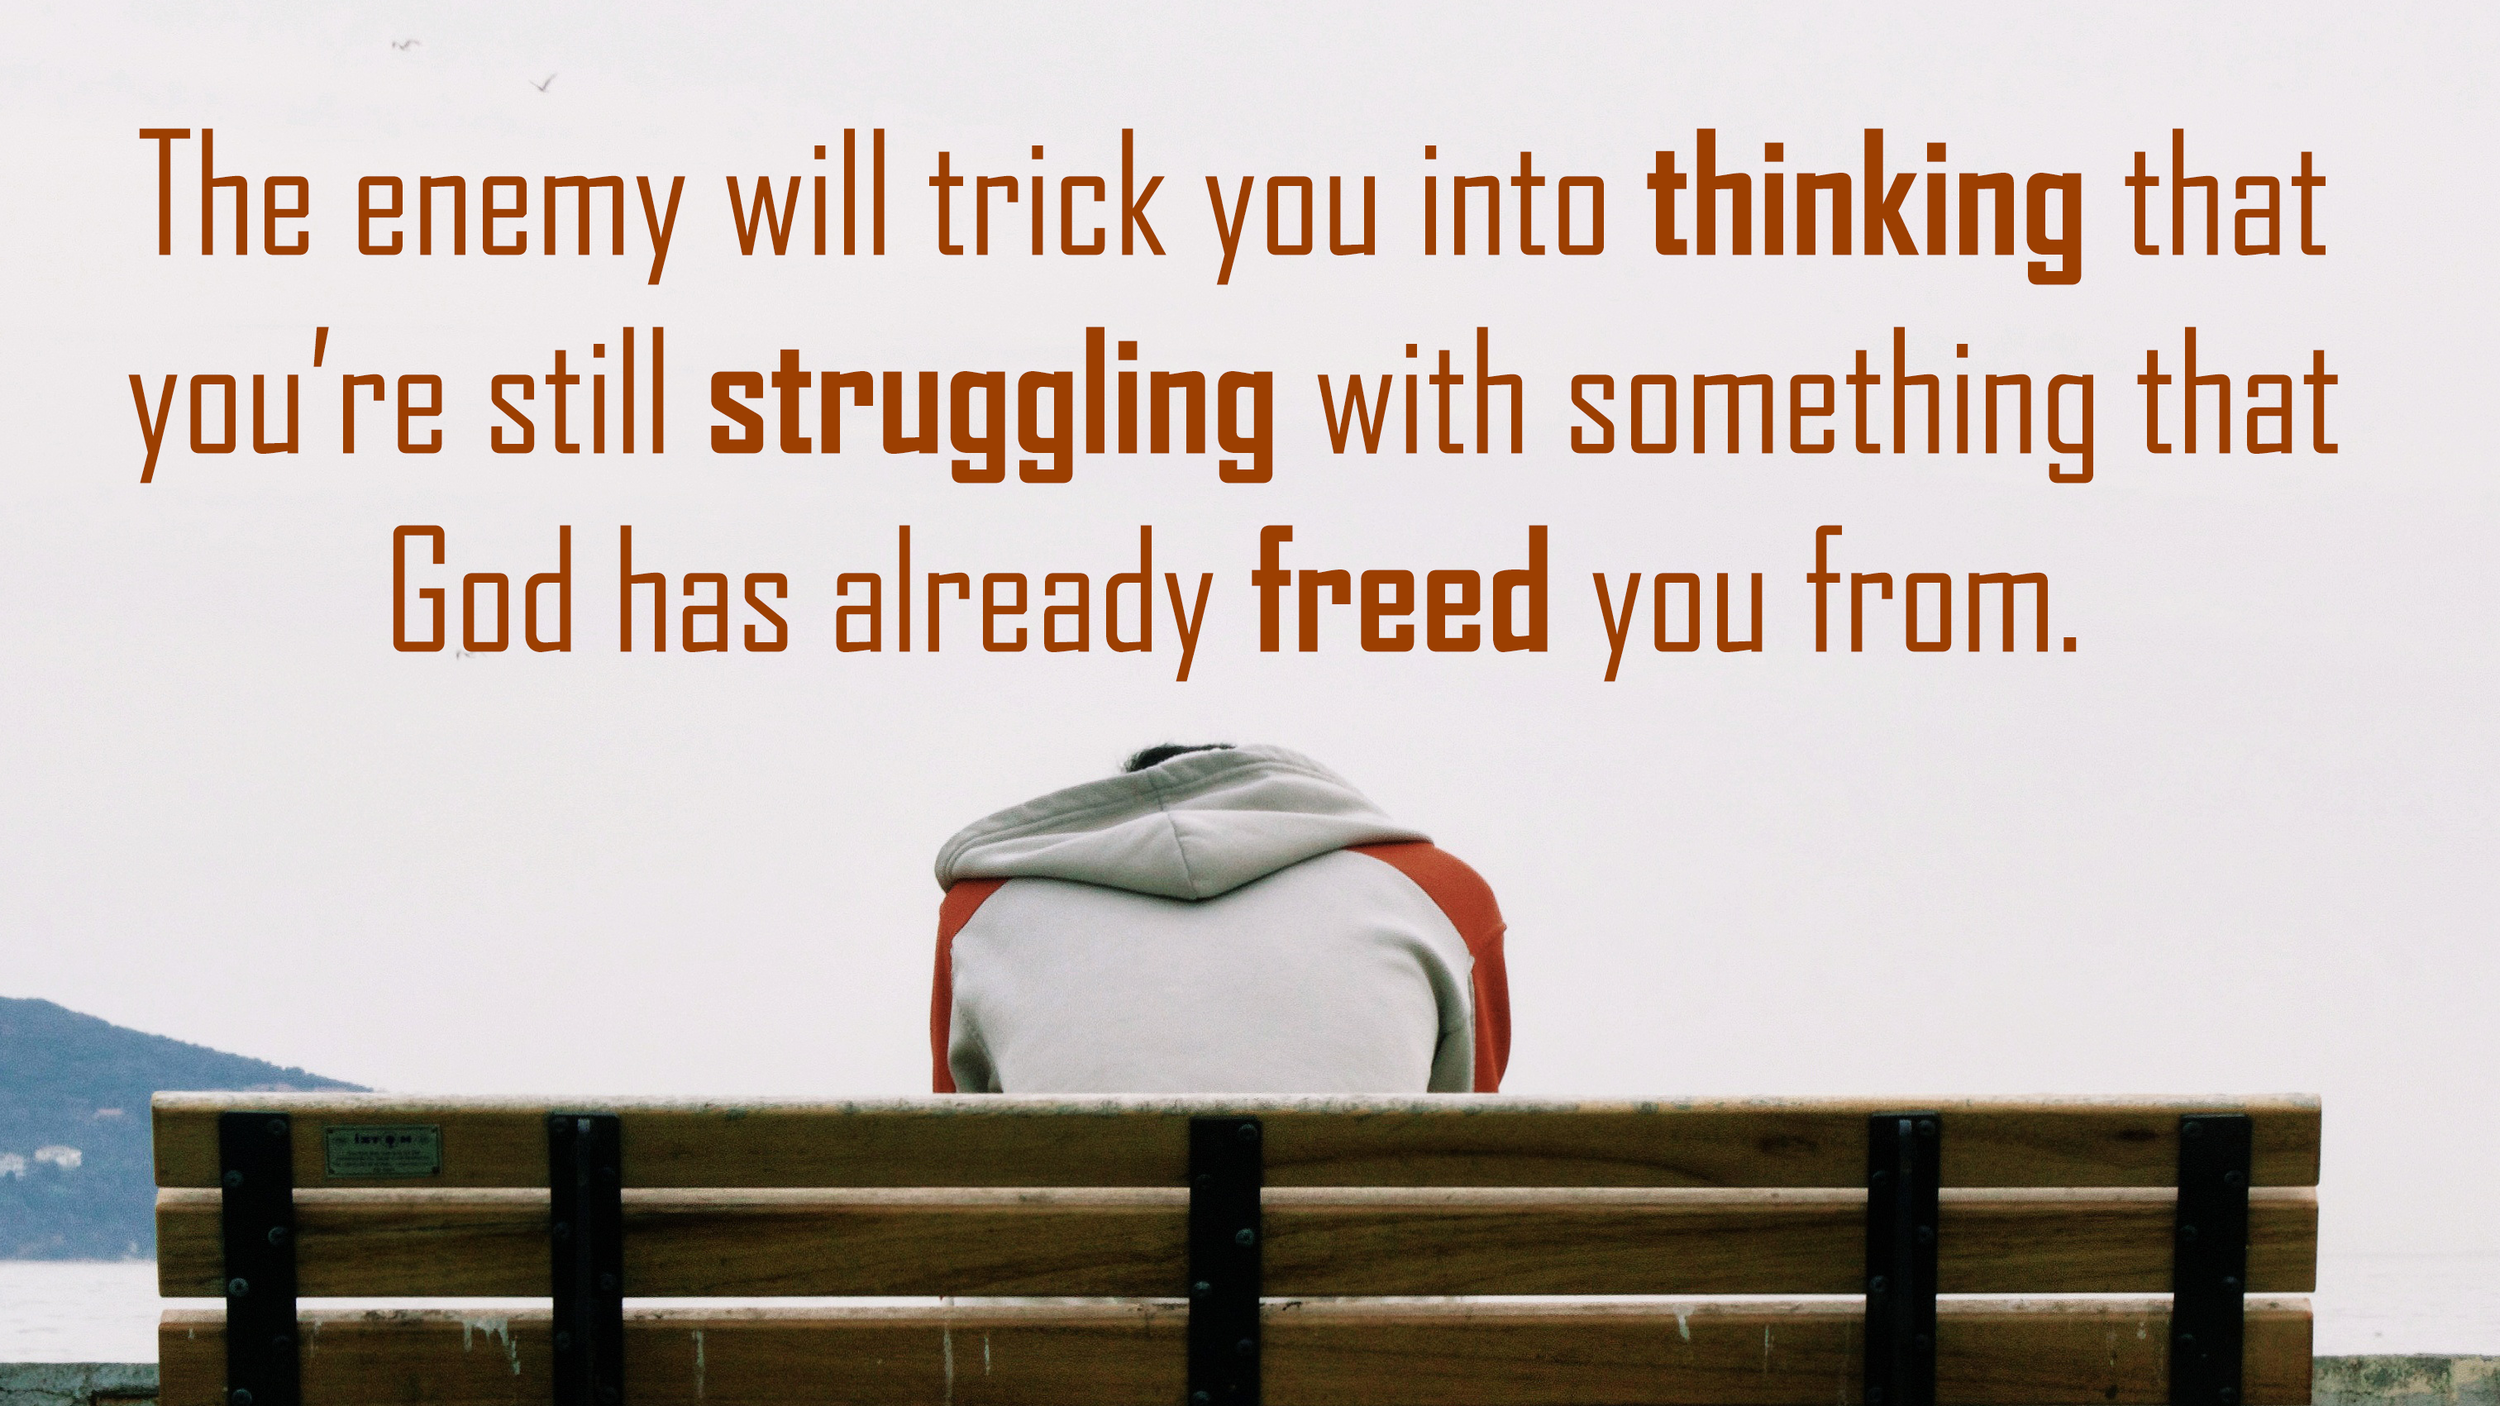 The enemy will trick you into thinking that you're still struggling with something that God has already freed you from.